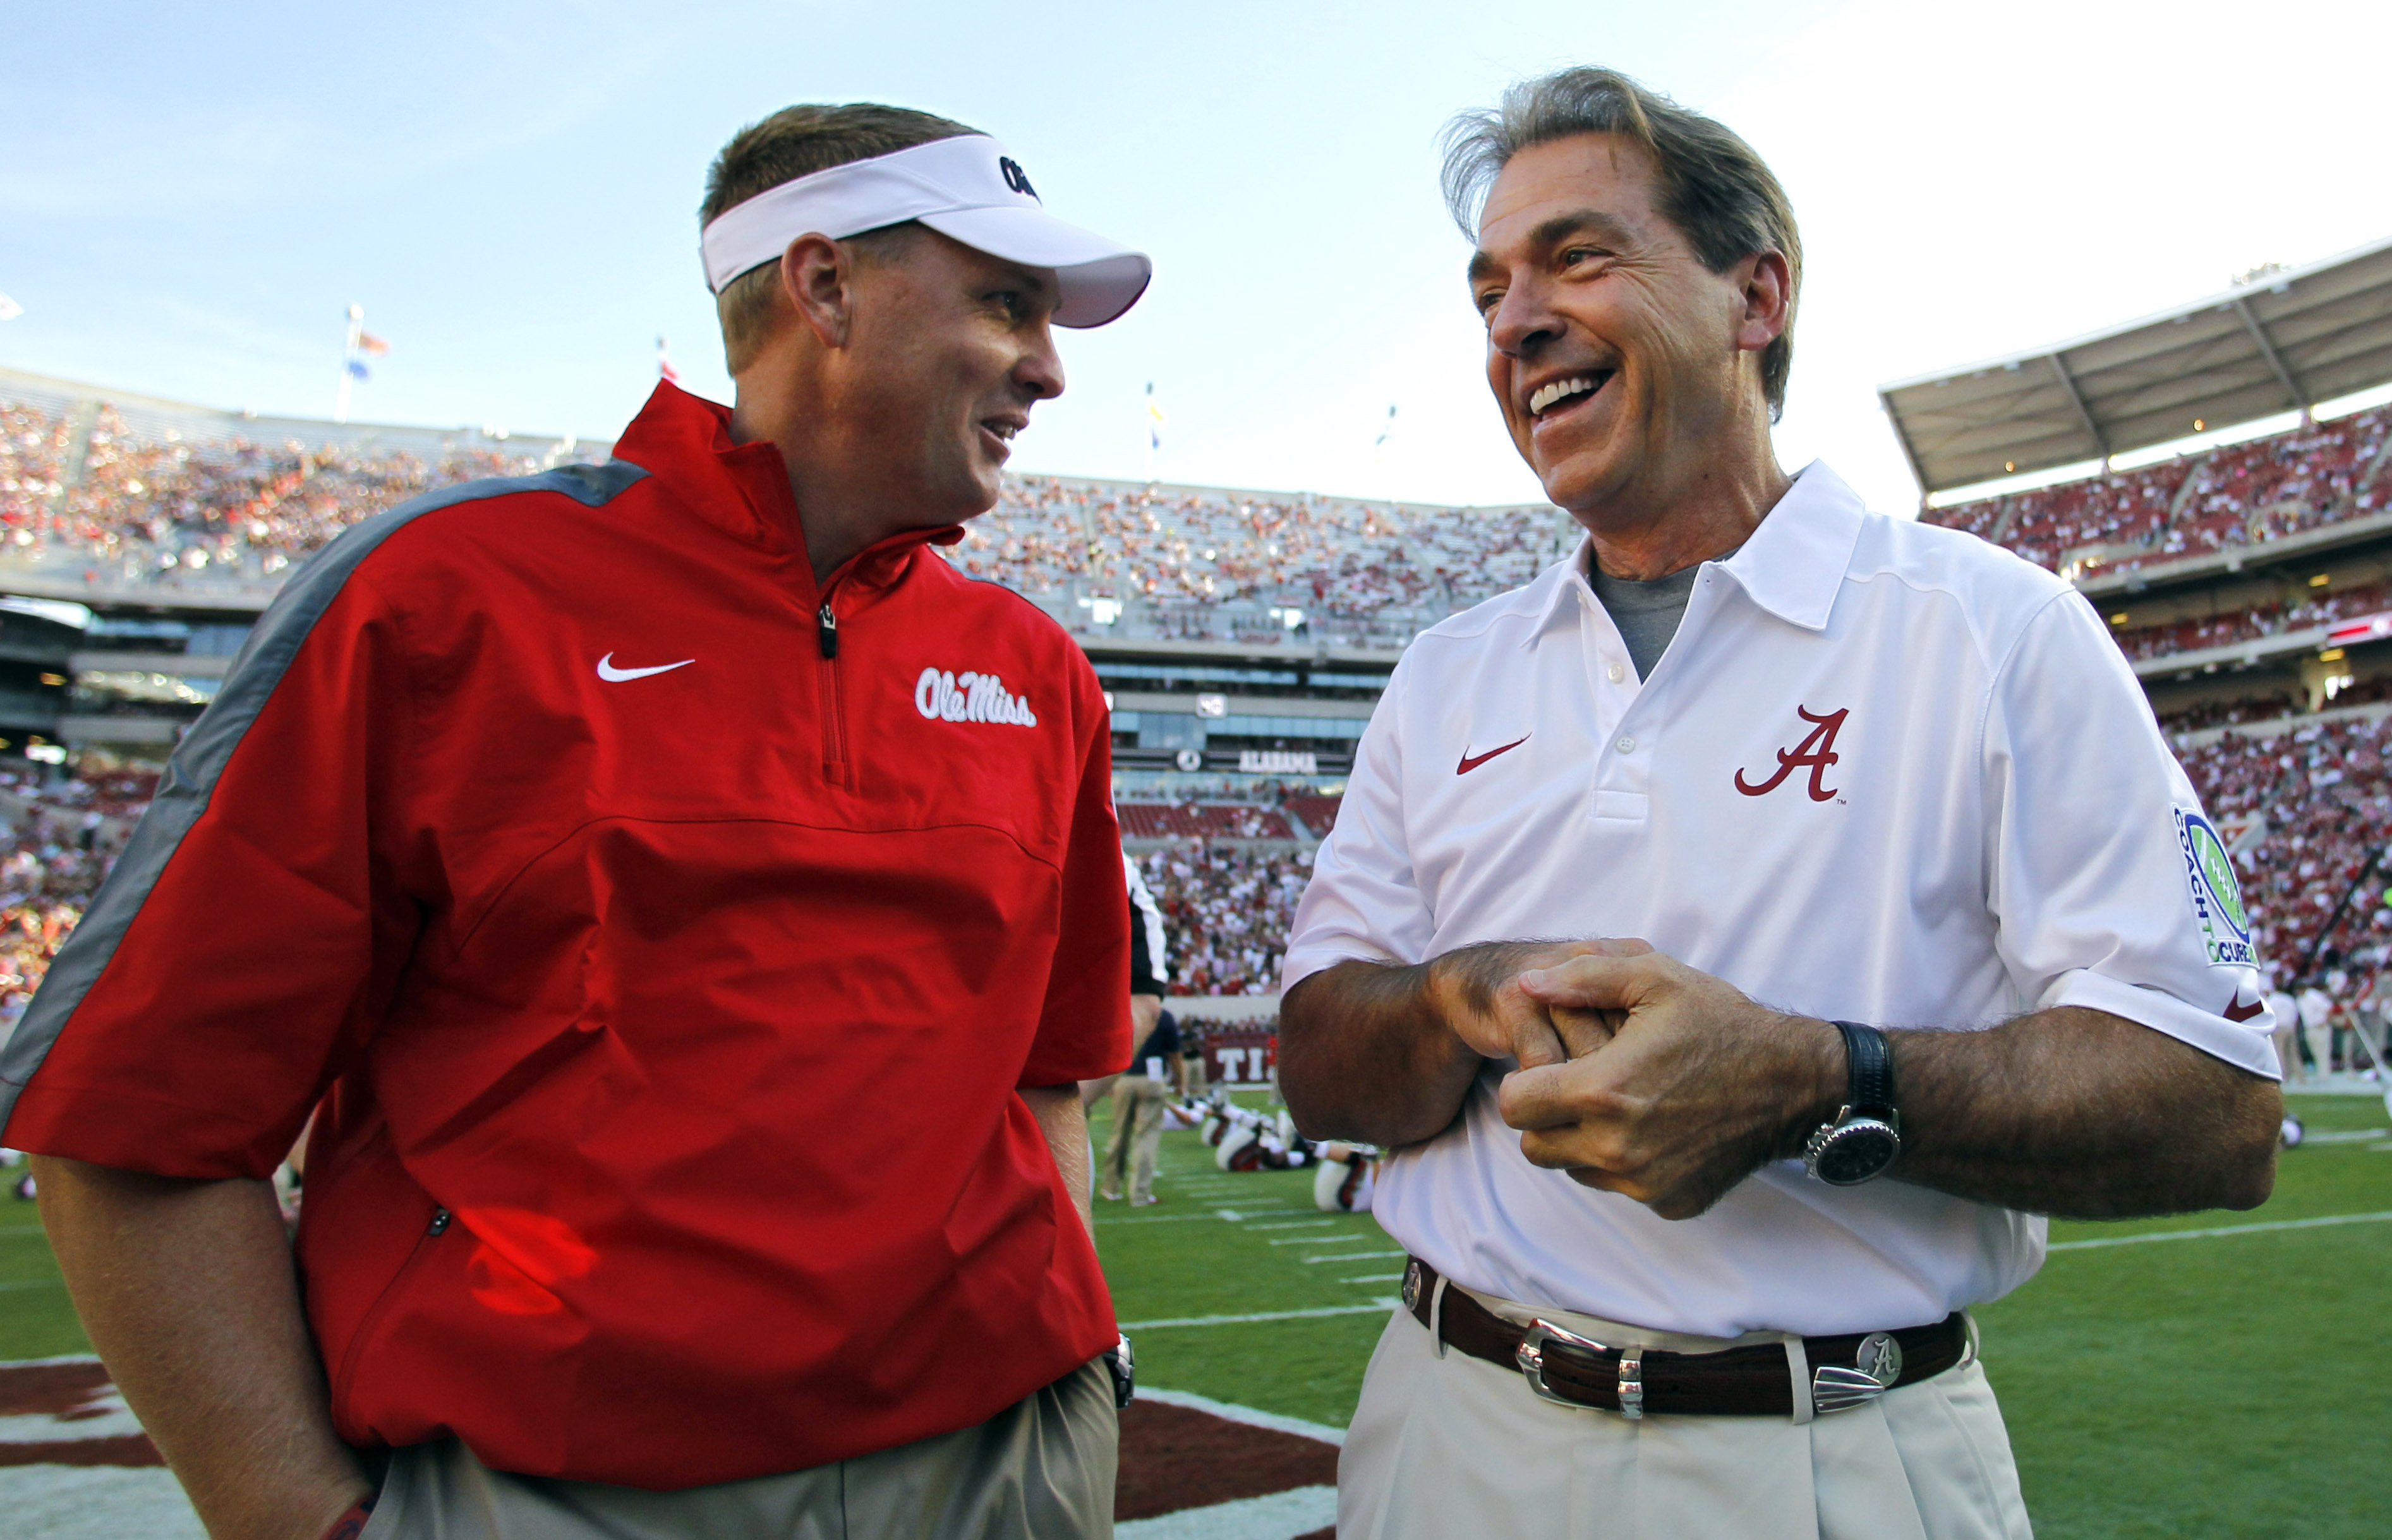 FILE - In this Sept. 28, 2013, file photo, Alabama head coach Nick Saban talks with Mississippi head coach Hugh Freeze before an NCAA college football game in Tuscaloosa, Ala. The 15th-ranked Rebels and No. 2 Alabama take center stage in Tuscaloosa on Sat